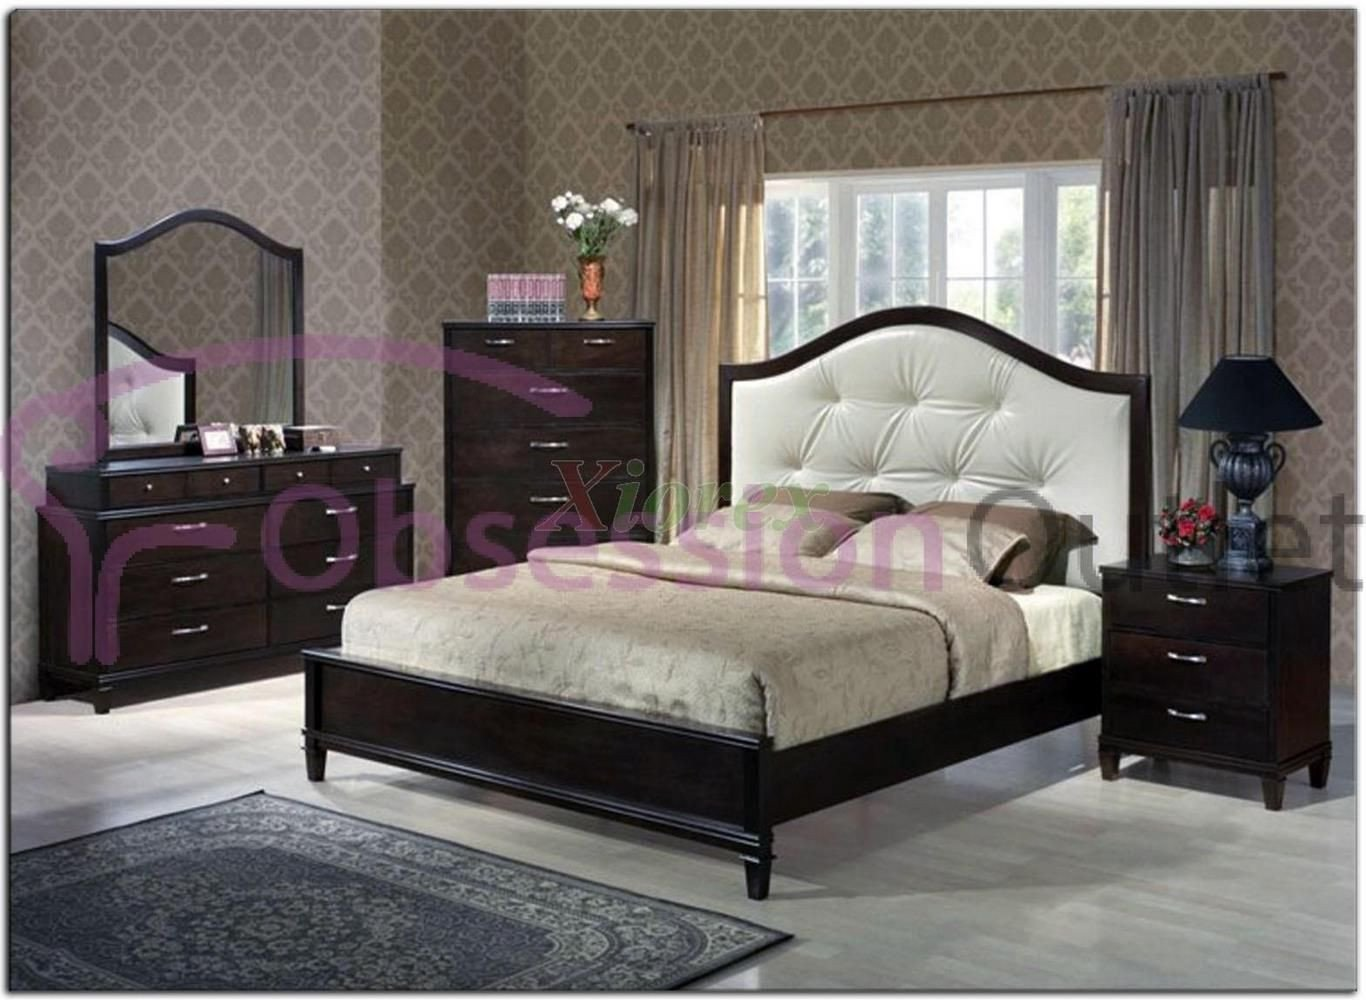 Bedroom Set with Mattress Elegant Sku Cpb204